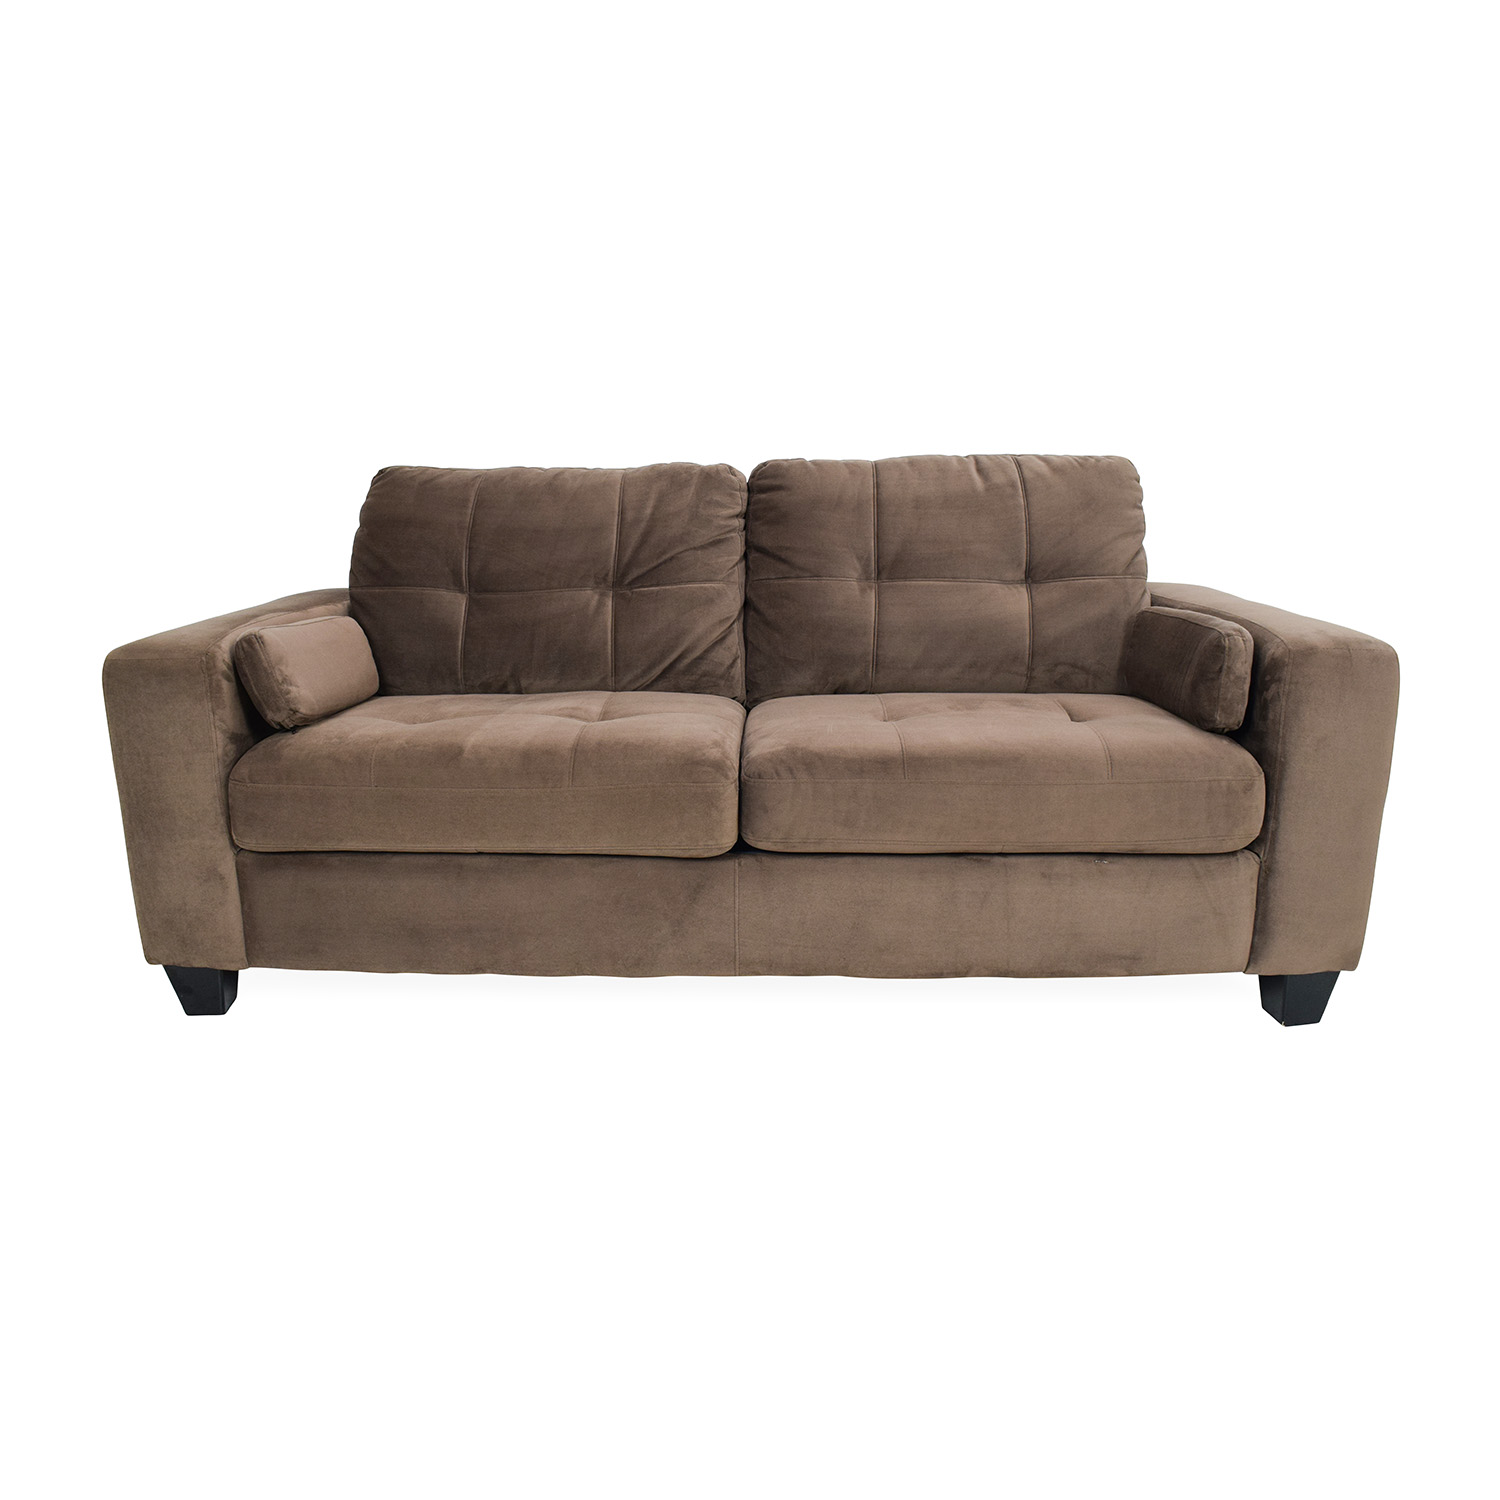 Full size sofa bed ikea sofa sleeper sectional sofa bed for Size of a sofa